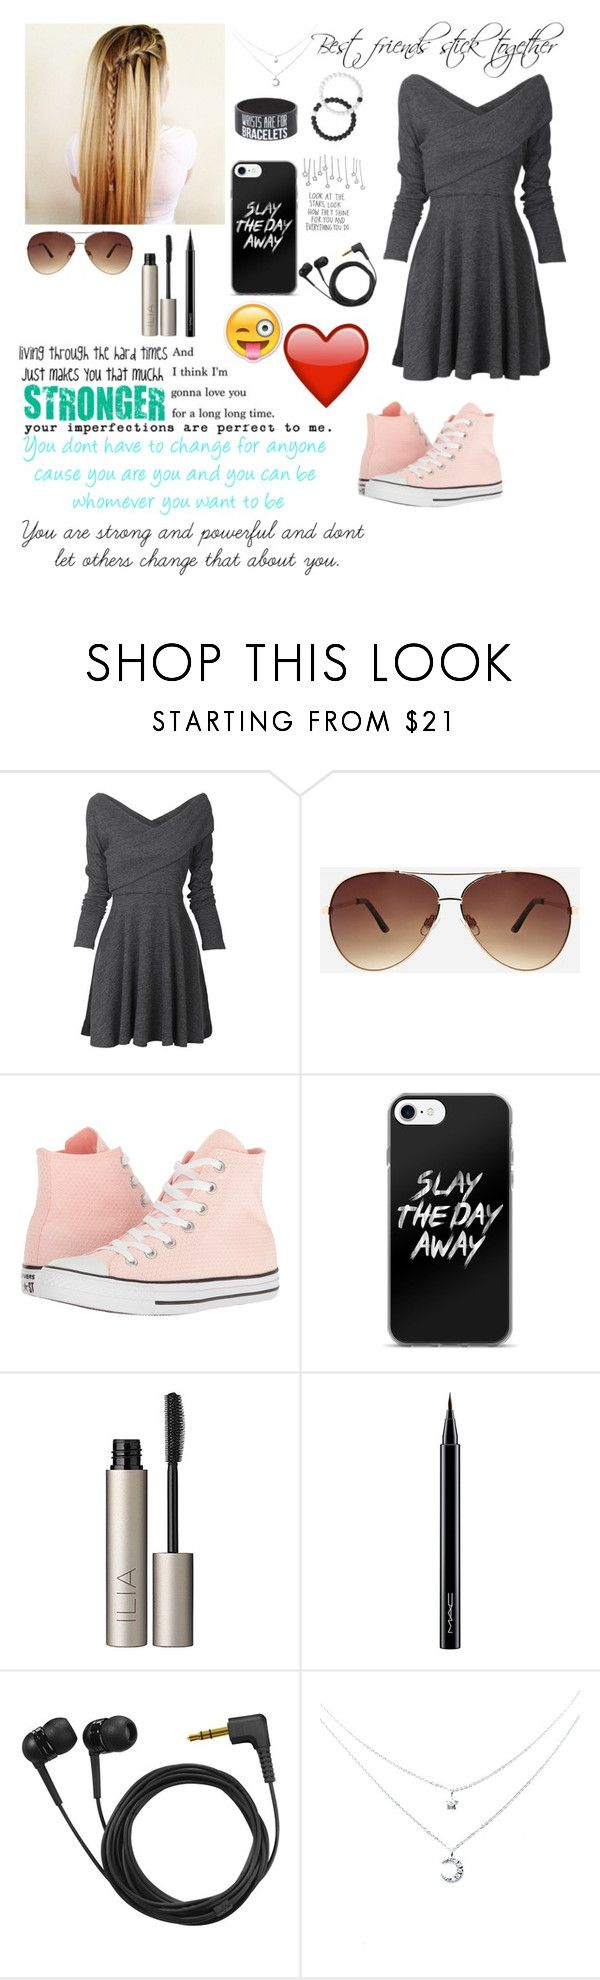 """RTD (I love you)"" by blondypup ❤ liked on Polyvore featuring Ashley Stewart, Converse, Ilia, MAC Cosmetics, Sennheiser, Hot Topic and Lokai"